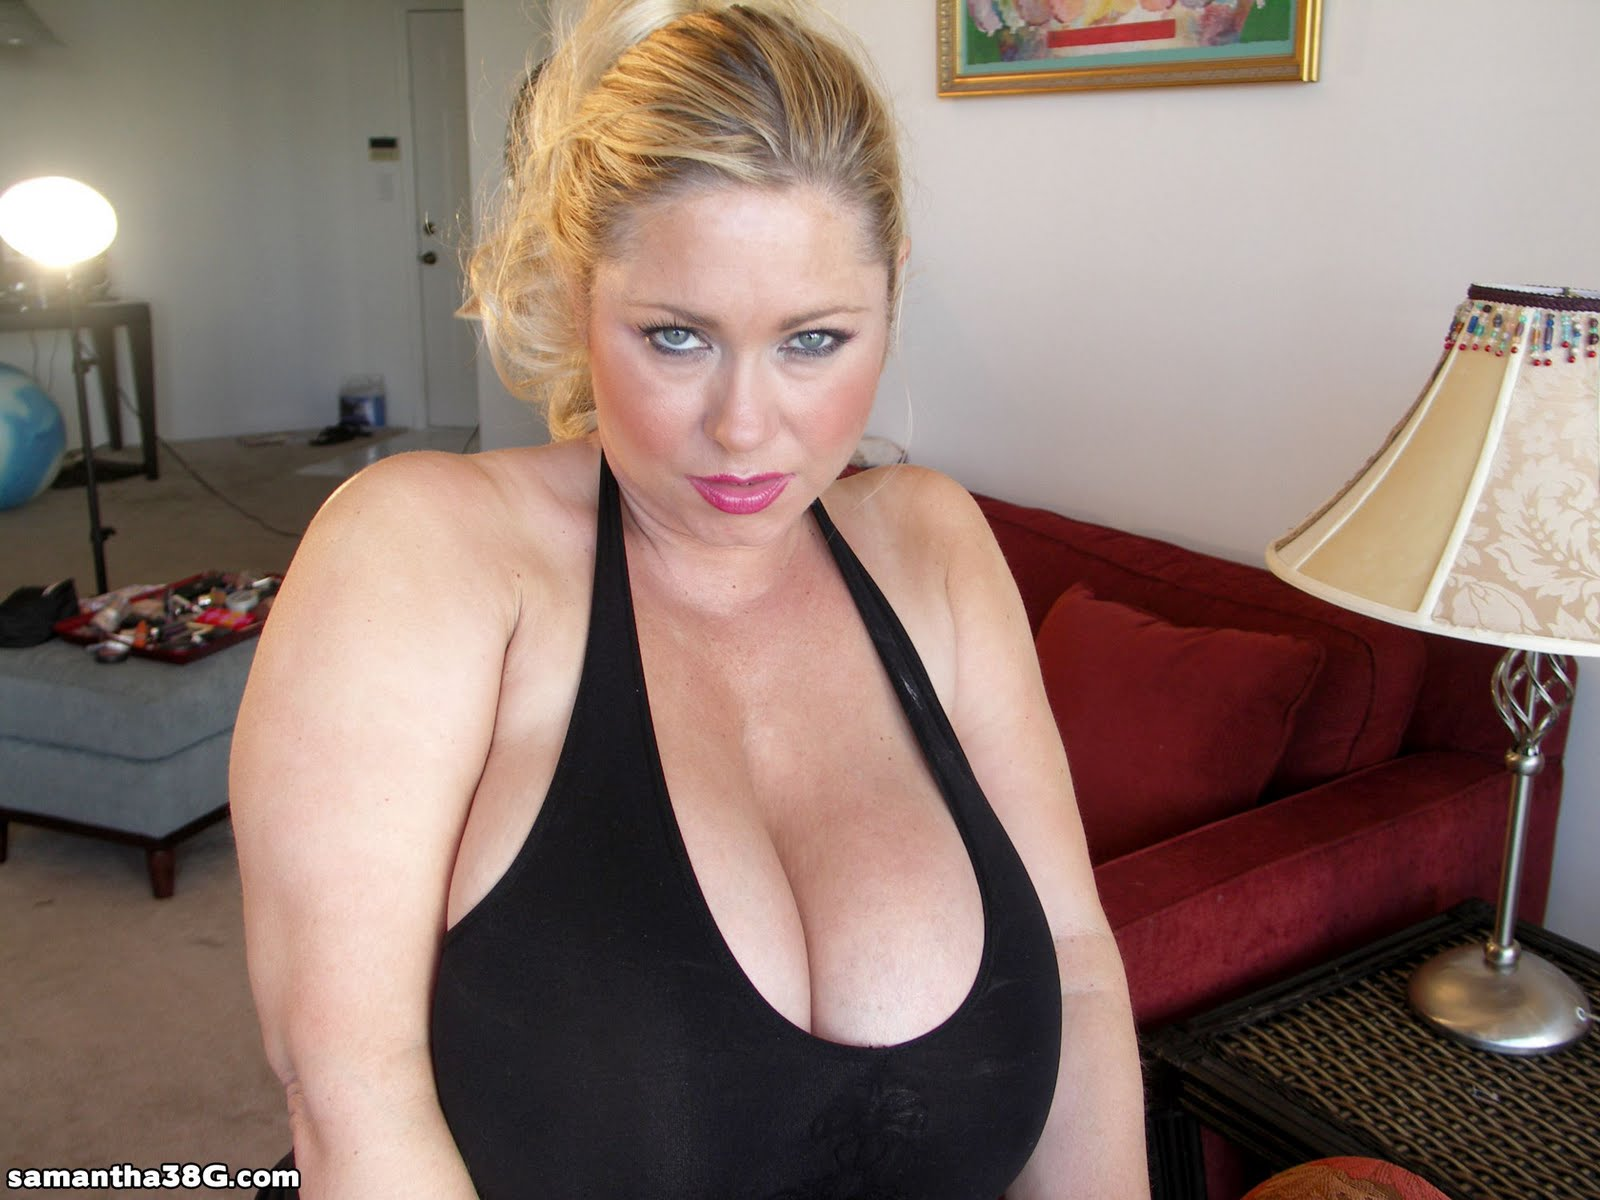 plummer milf women Hot free mature porn pictures in the curvy category of gracefulmilfcom our archive contains a lot of curvy, chubby, thick, bbw galleries.